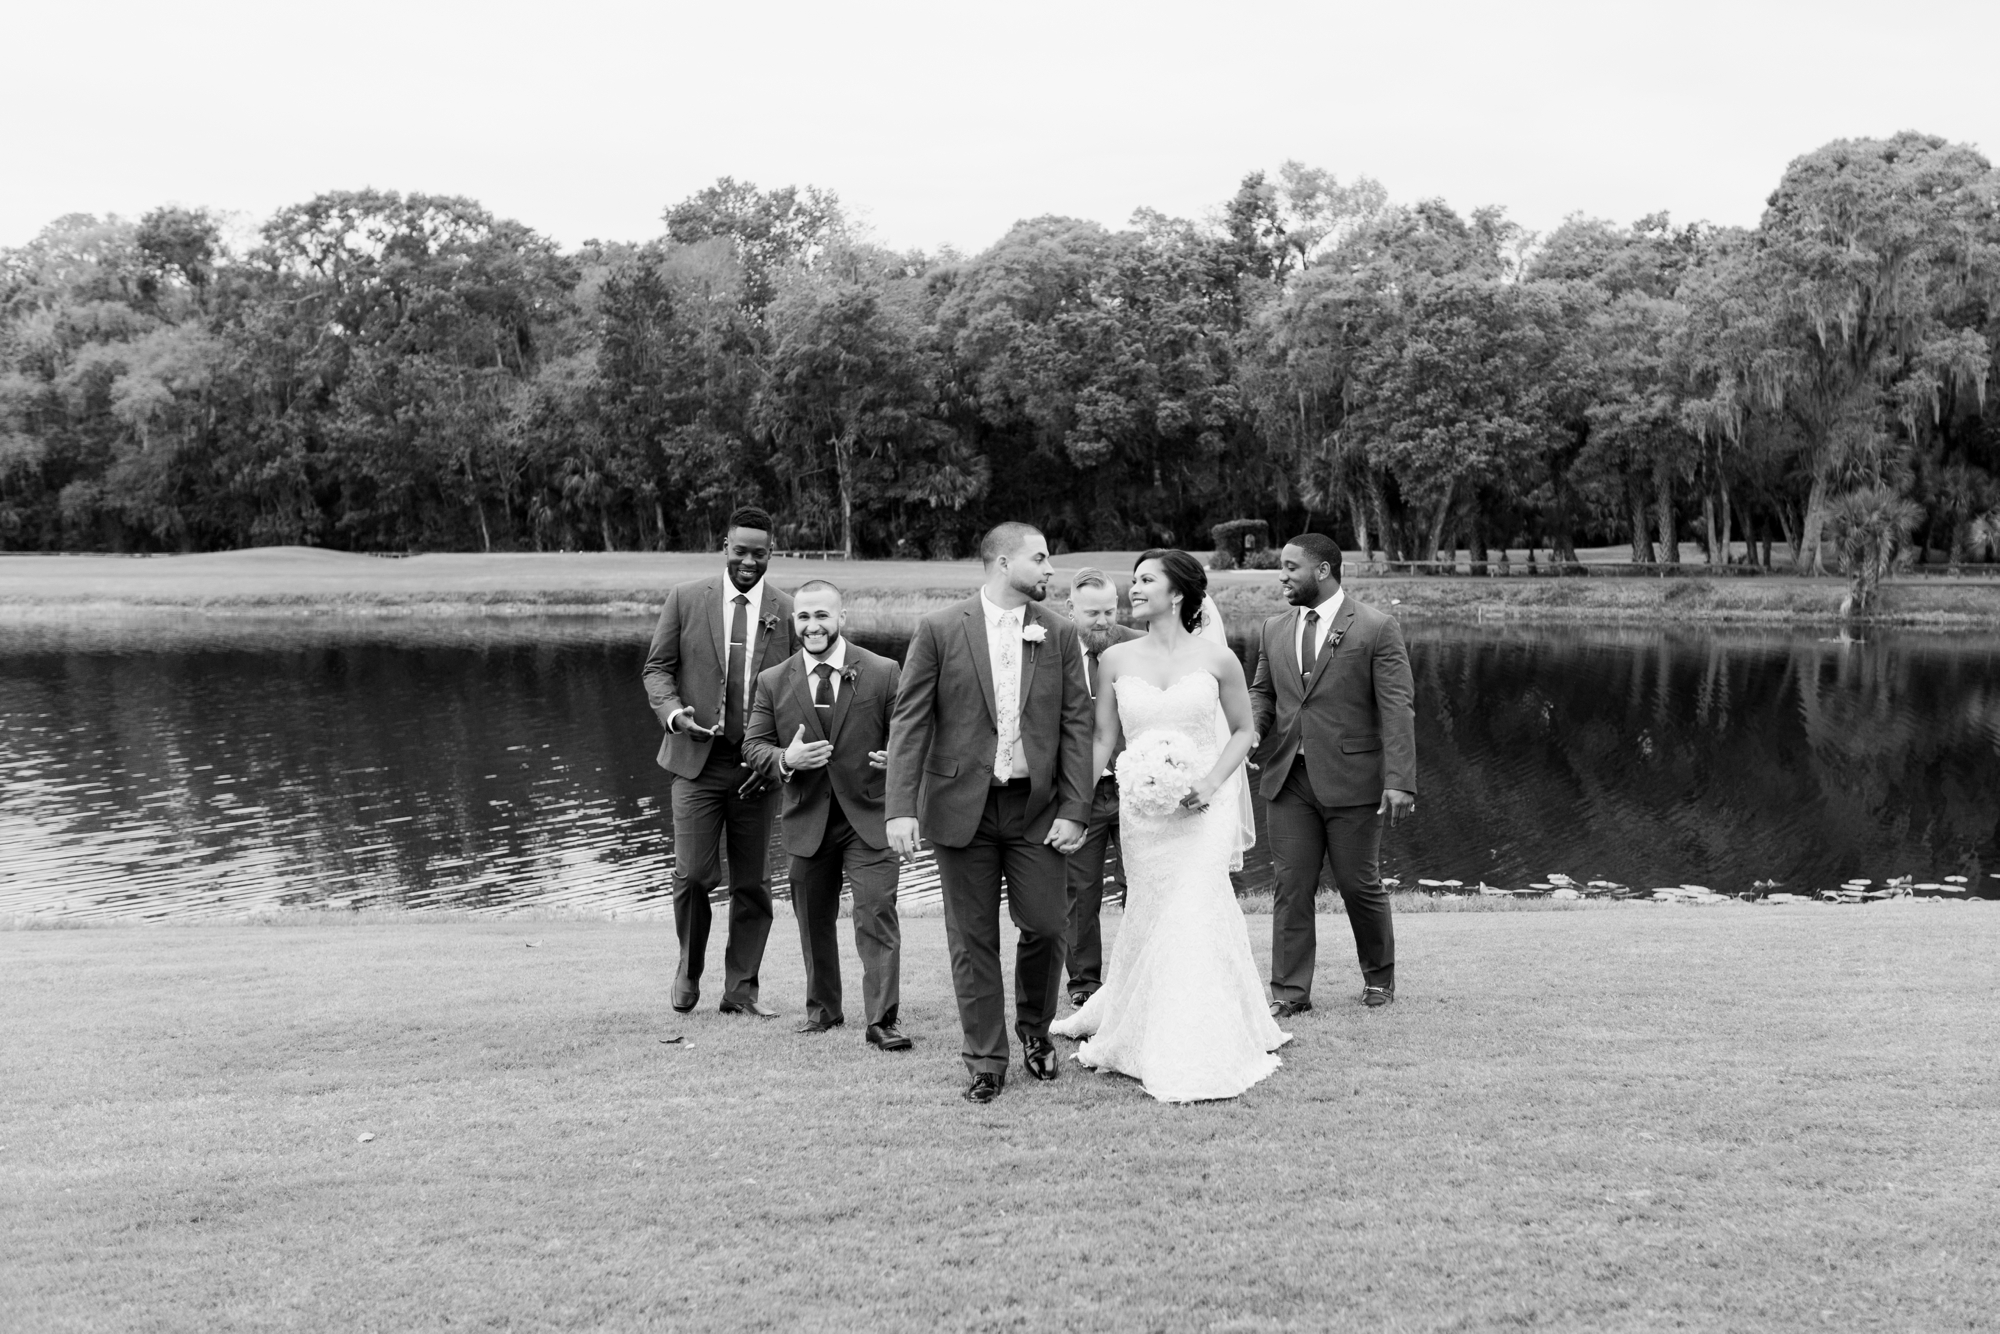 tampa-palms-wedding-christina-luis-I58A2090.jpg